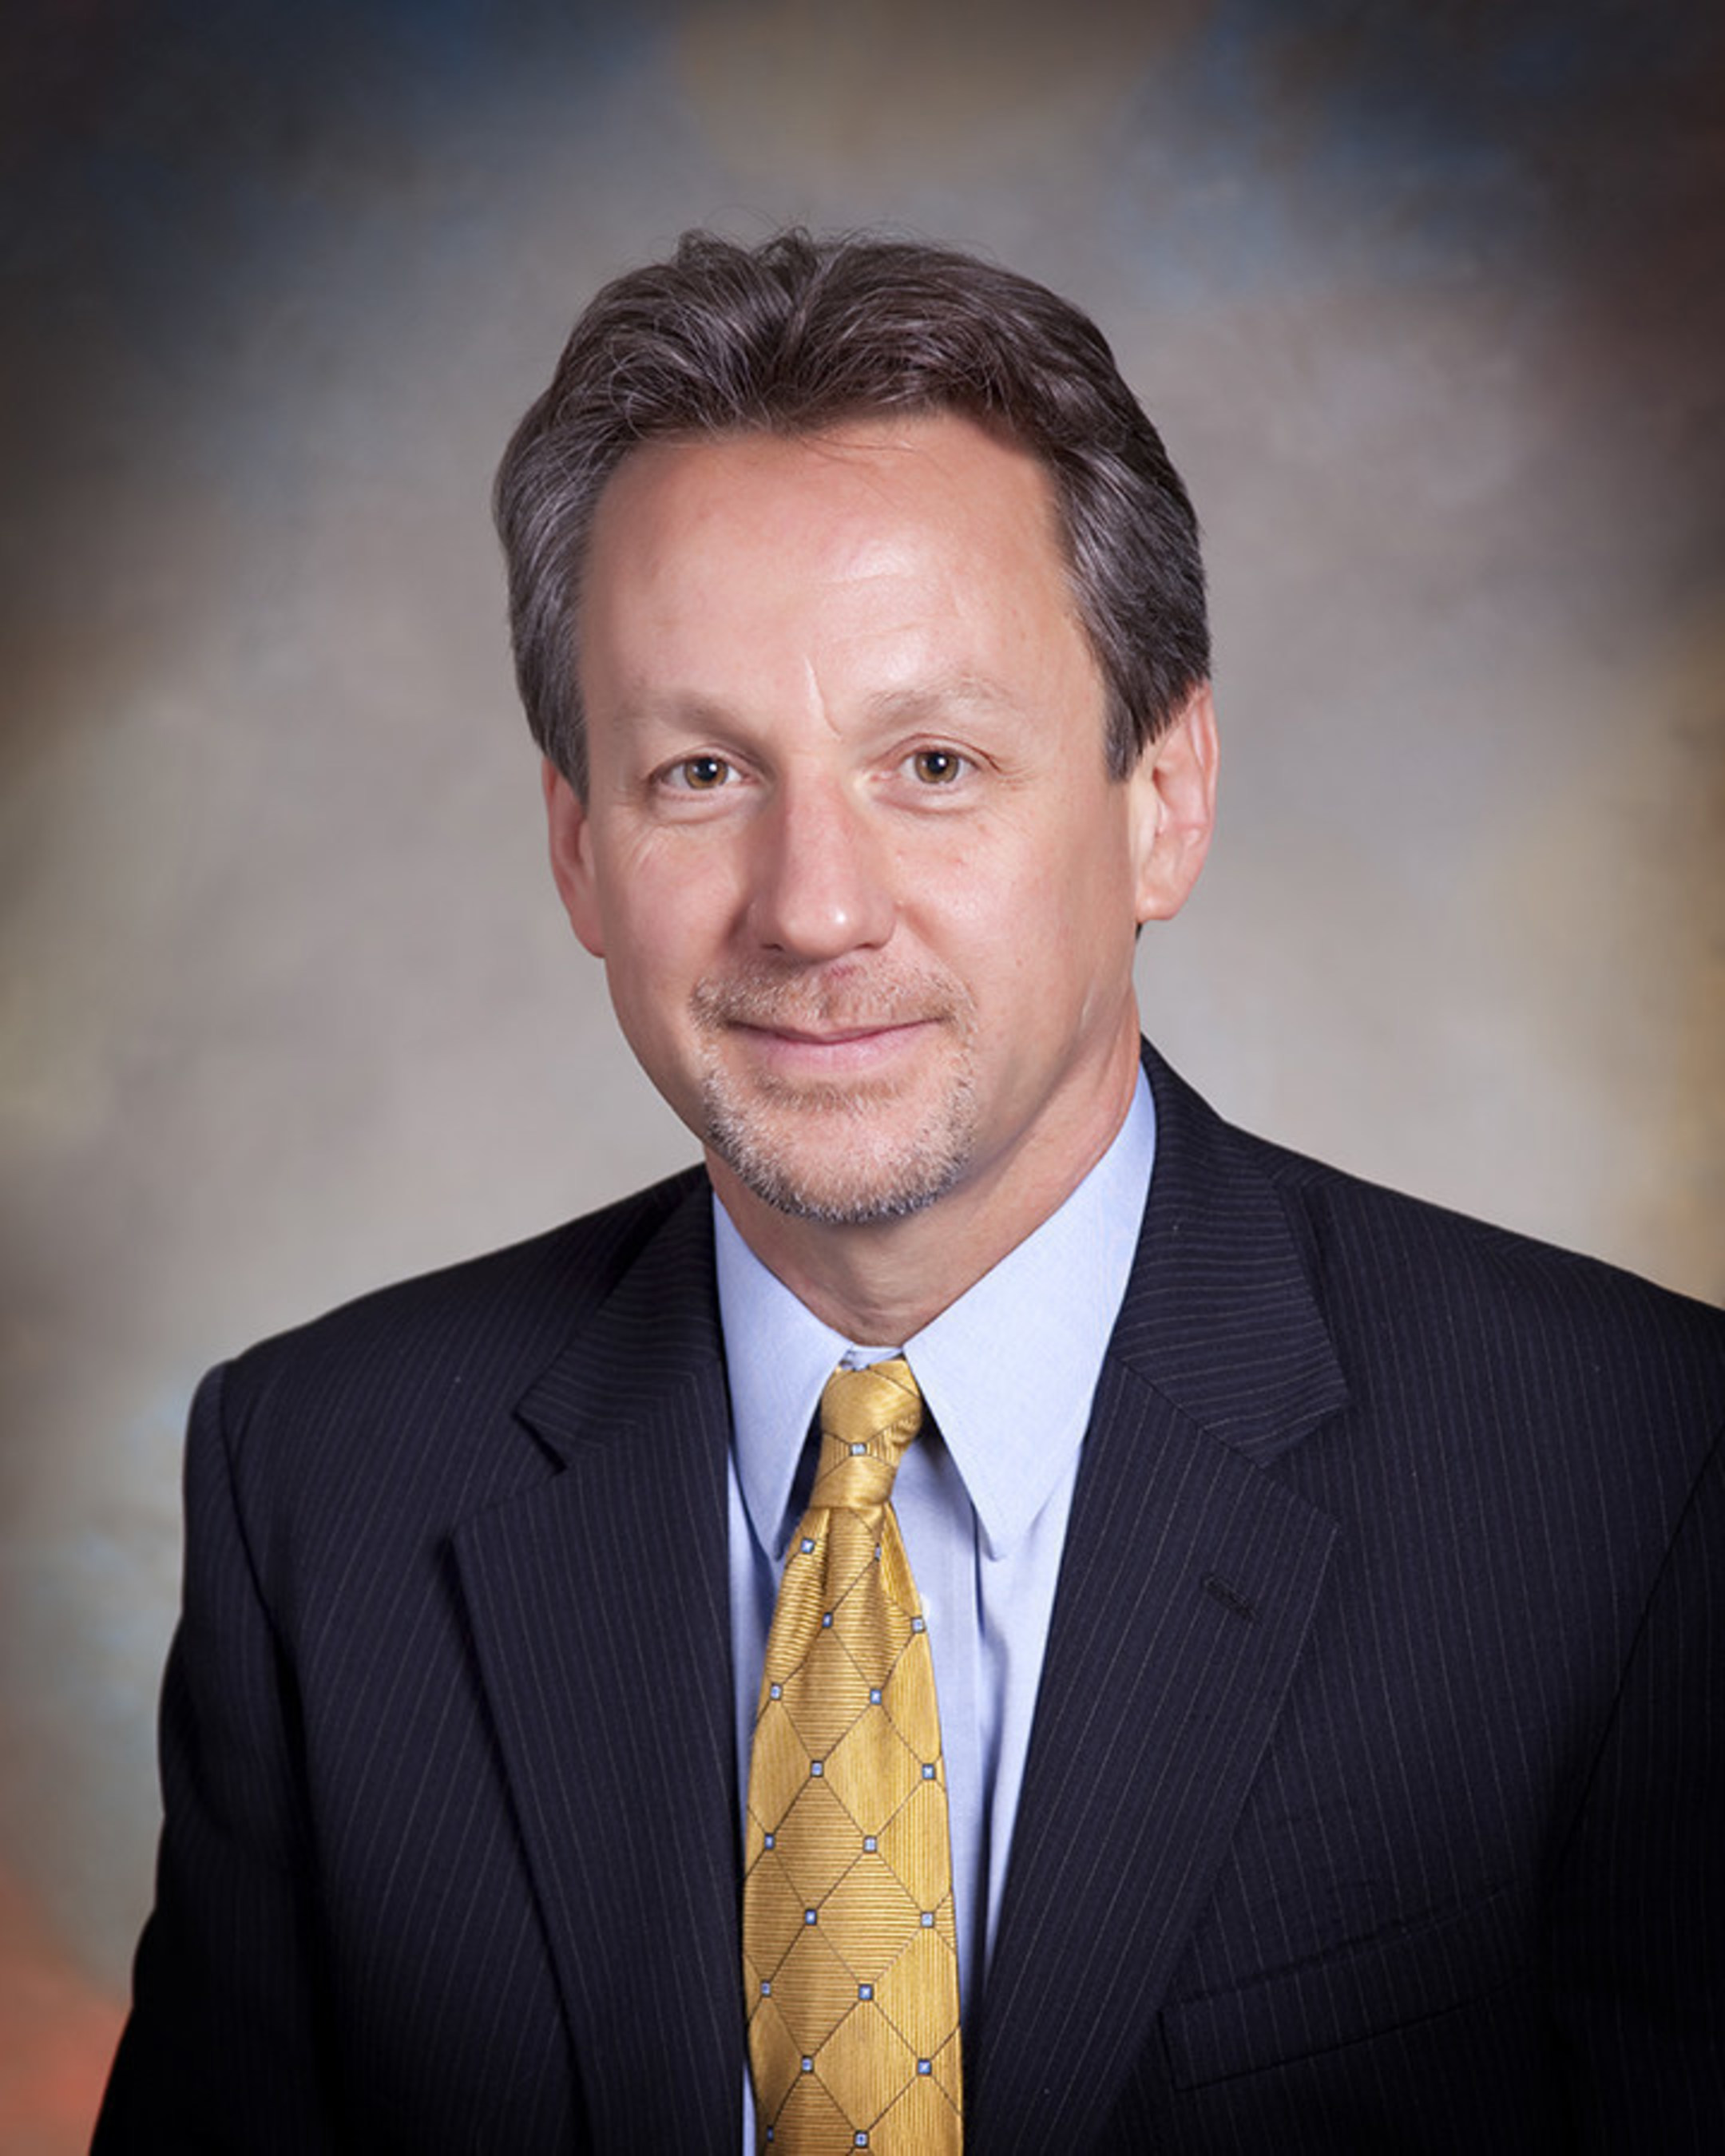 WesBanco Announces the Appointment of David L. Sayre as Market President for Kanawha Region